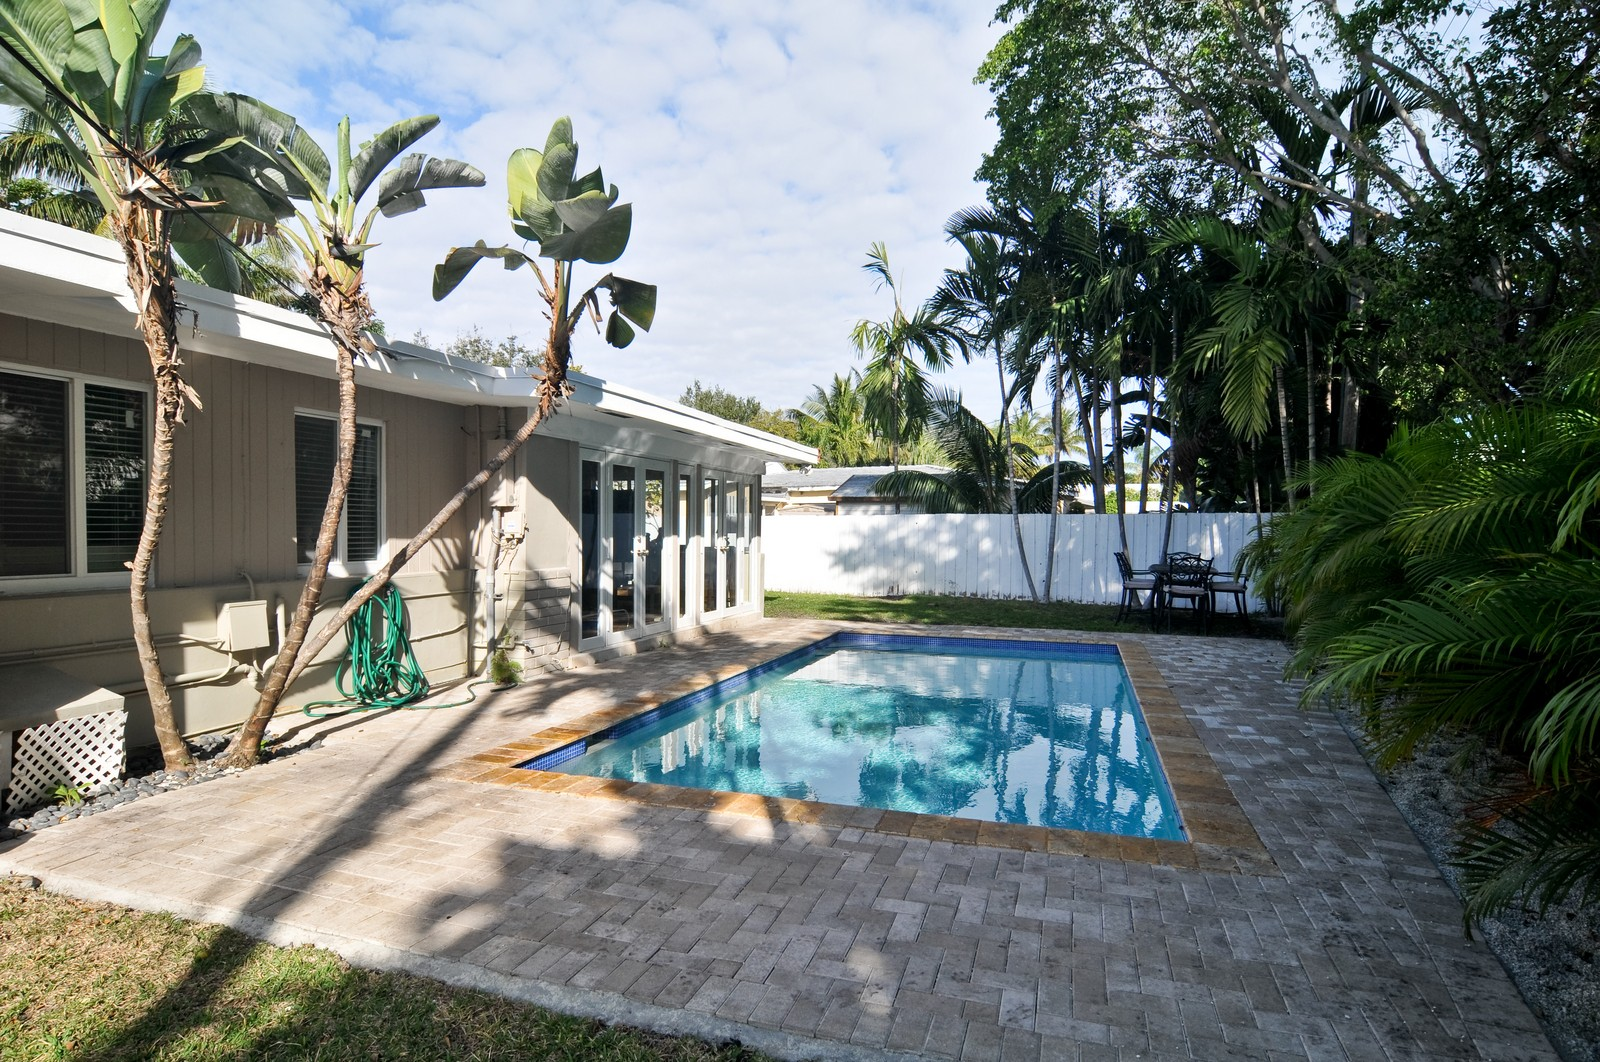 Real Estate Photography - 285 Glenrigde Rd, Key Biscayne, FL, 33149 - Pool